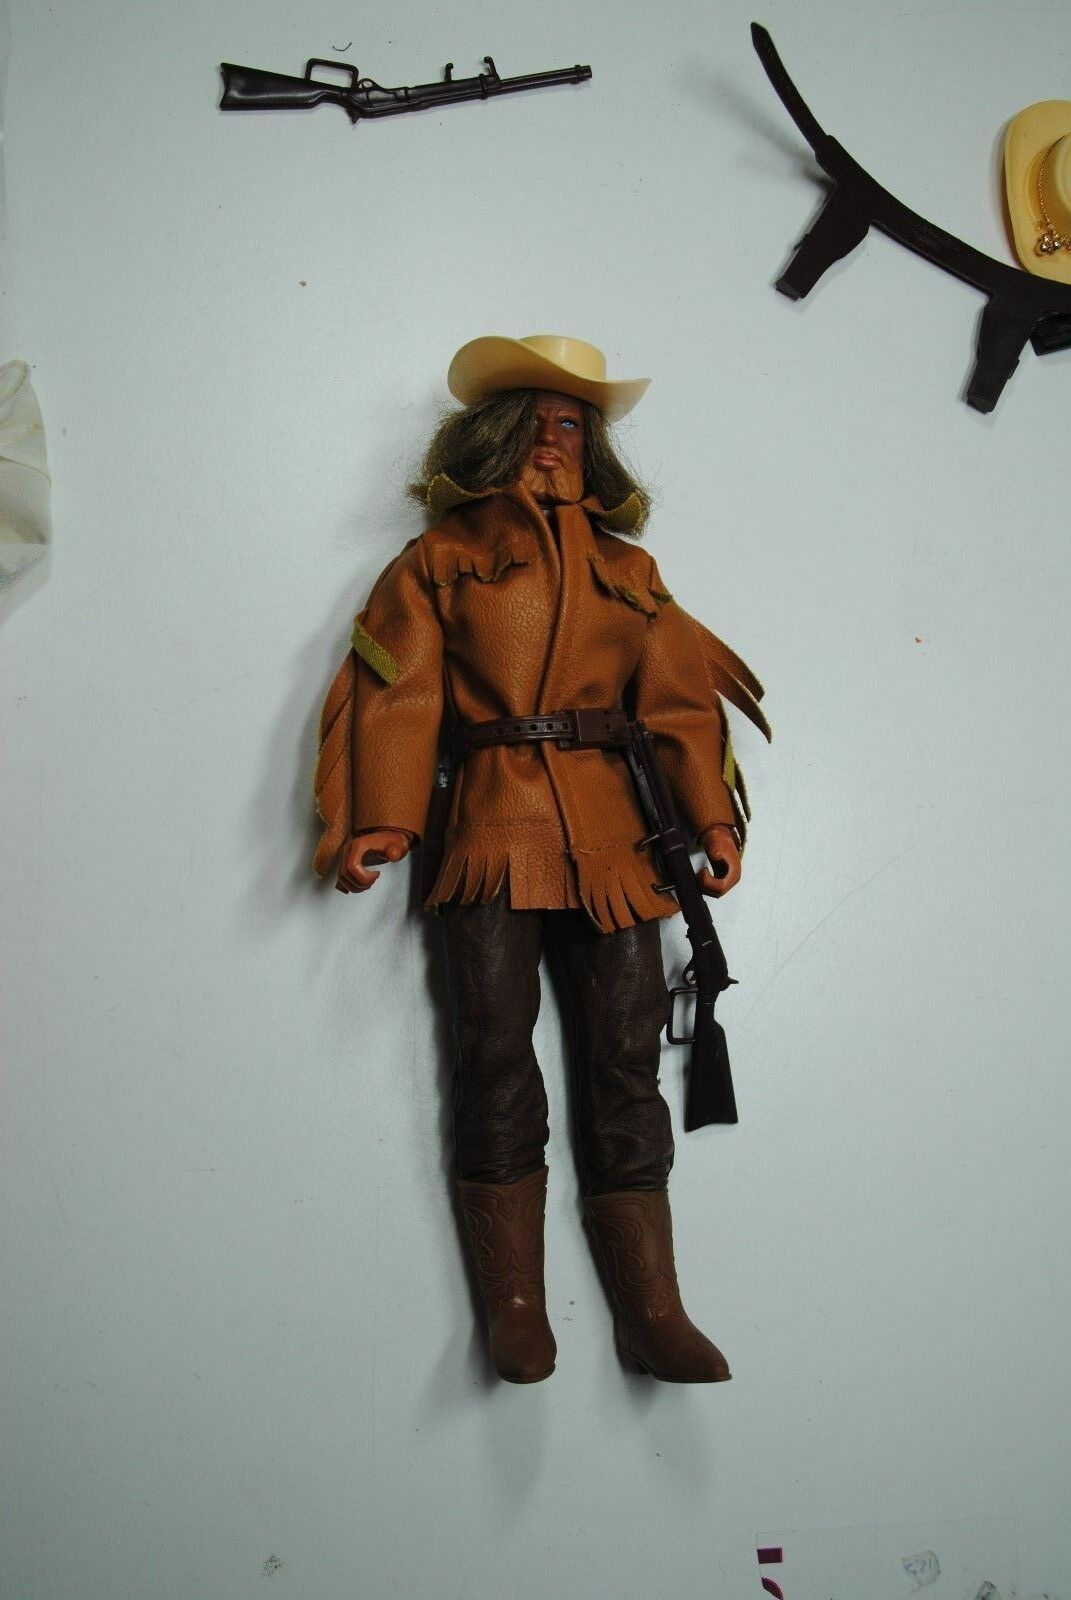 BIG JIM MATTEL KARL MAY      OLD SURE - HAND - KARL MAY OUTFIT        NICE SET